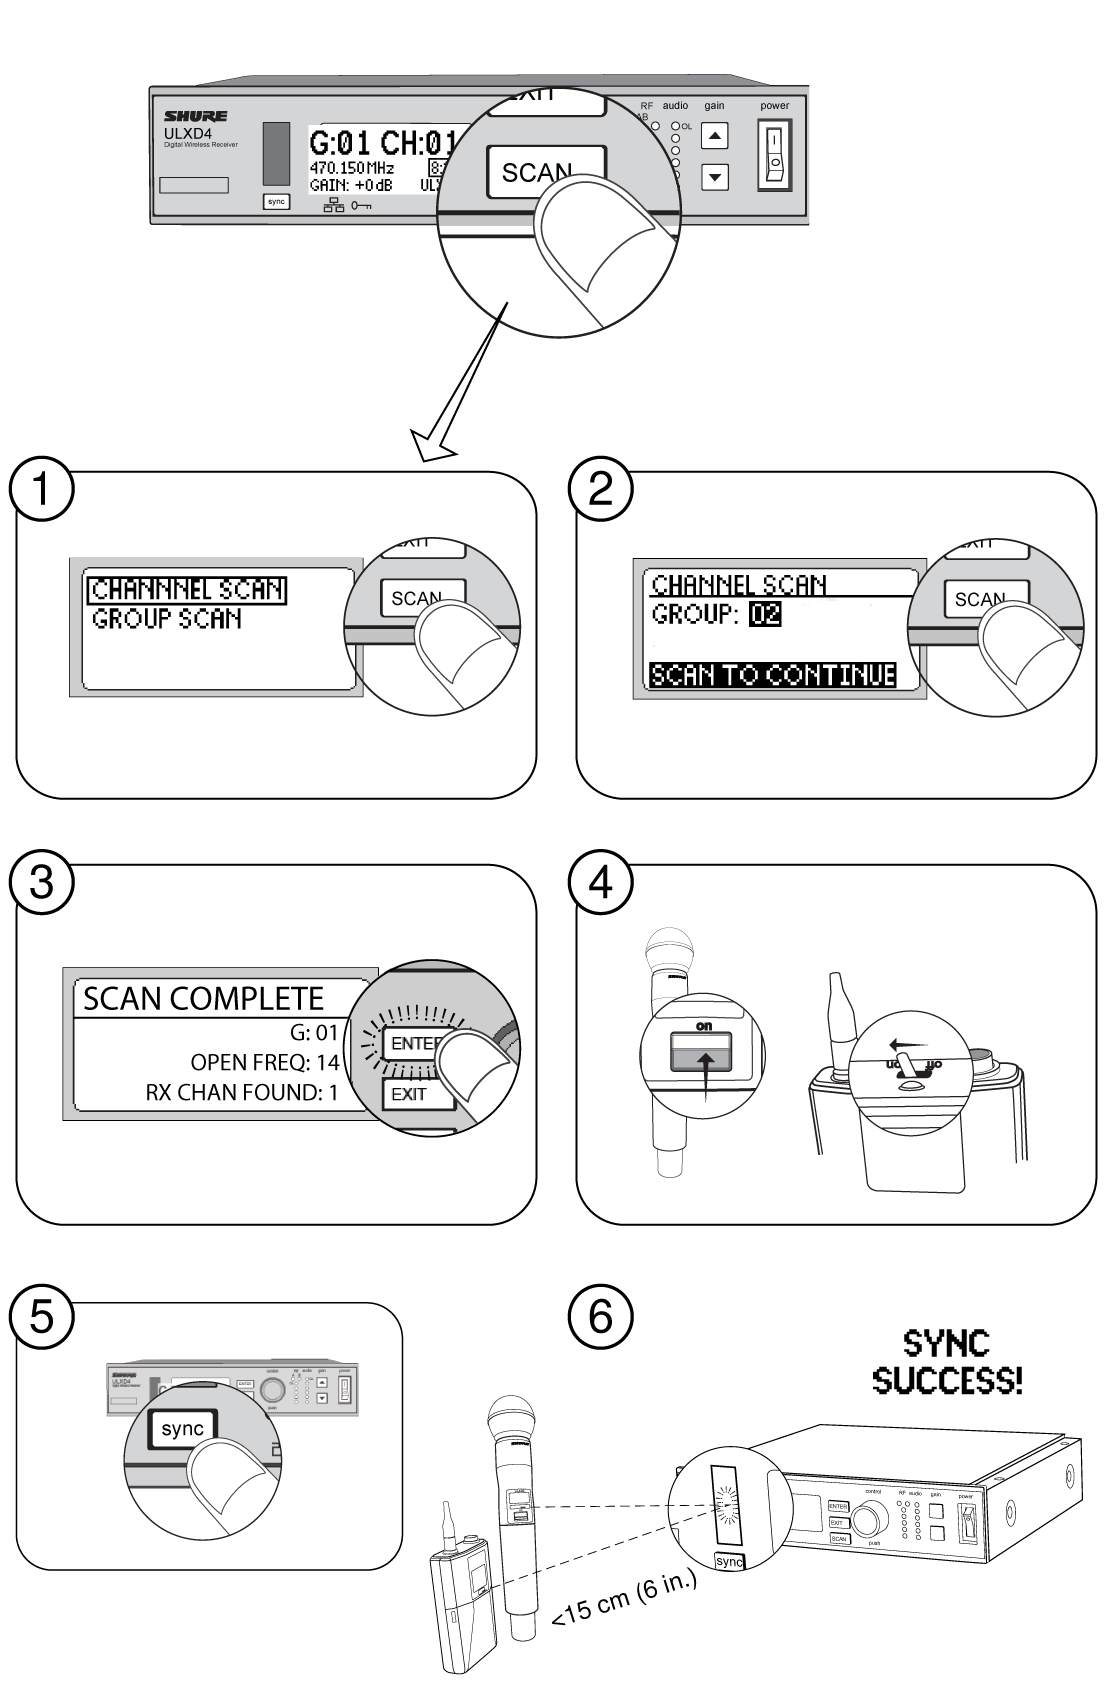 The steps of scanning and syncing being performed